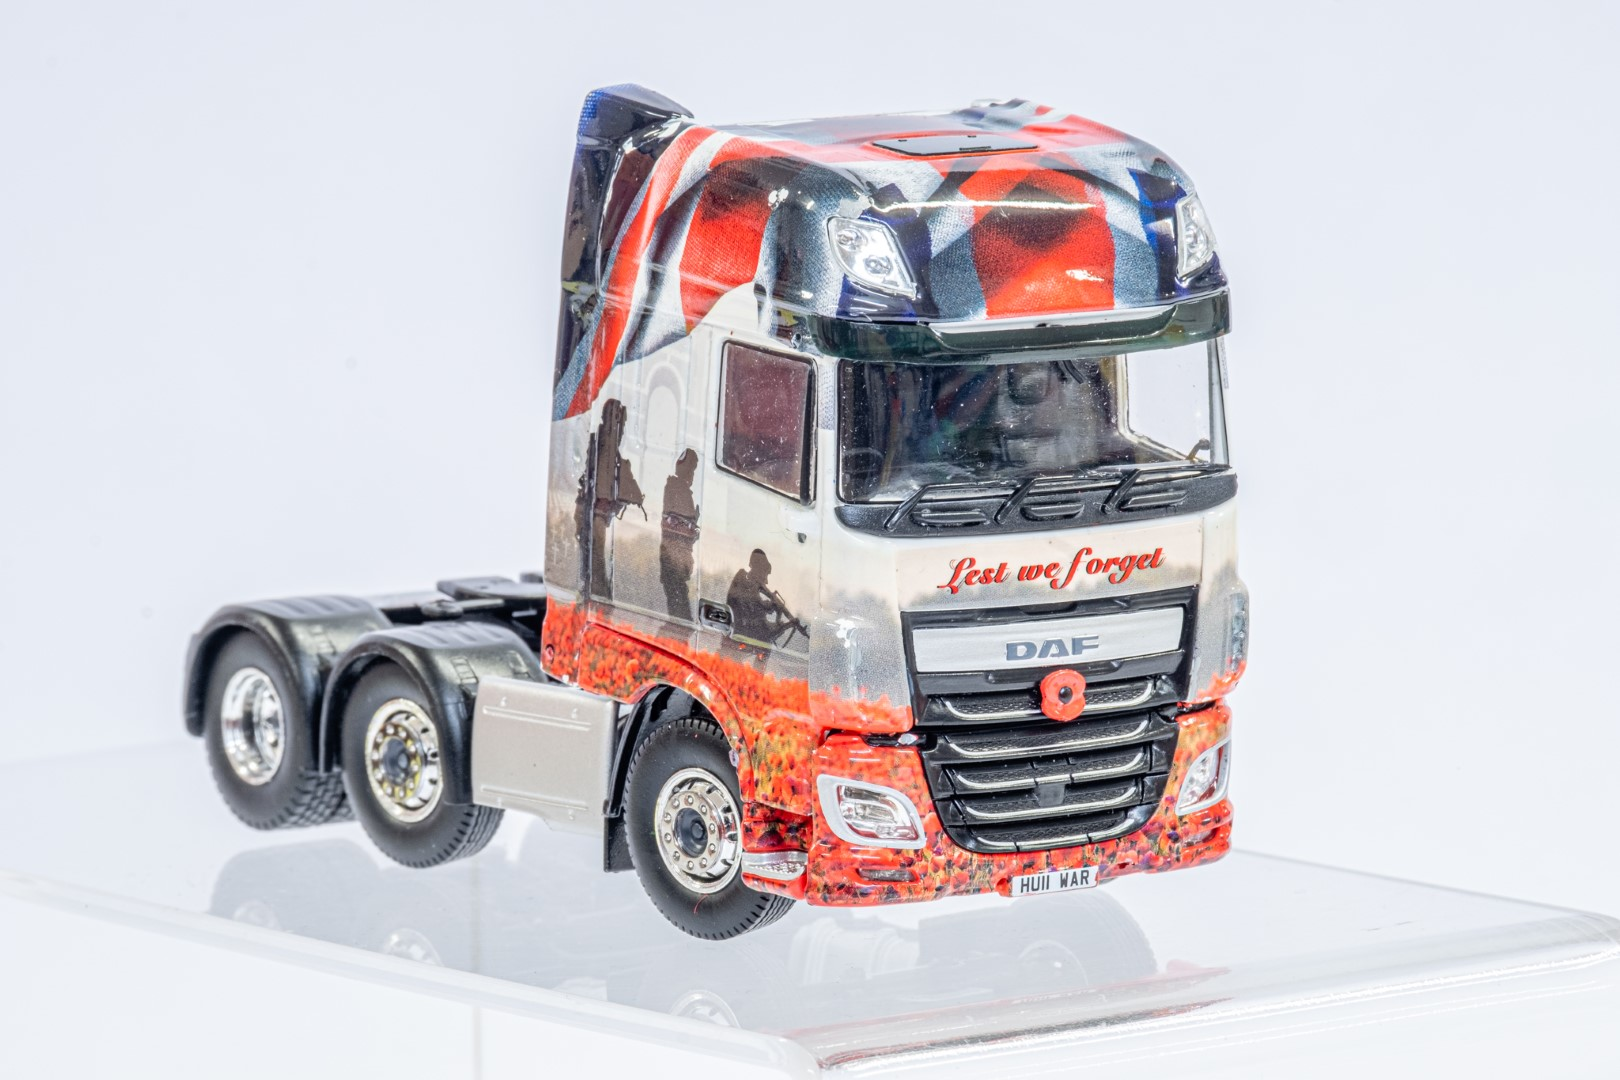 Tekno The Poppy Truck - DAF Tractor Unit In Gift Box - Image 8 of 9